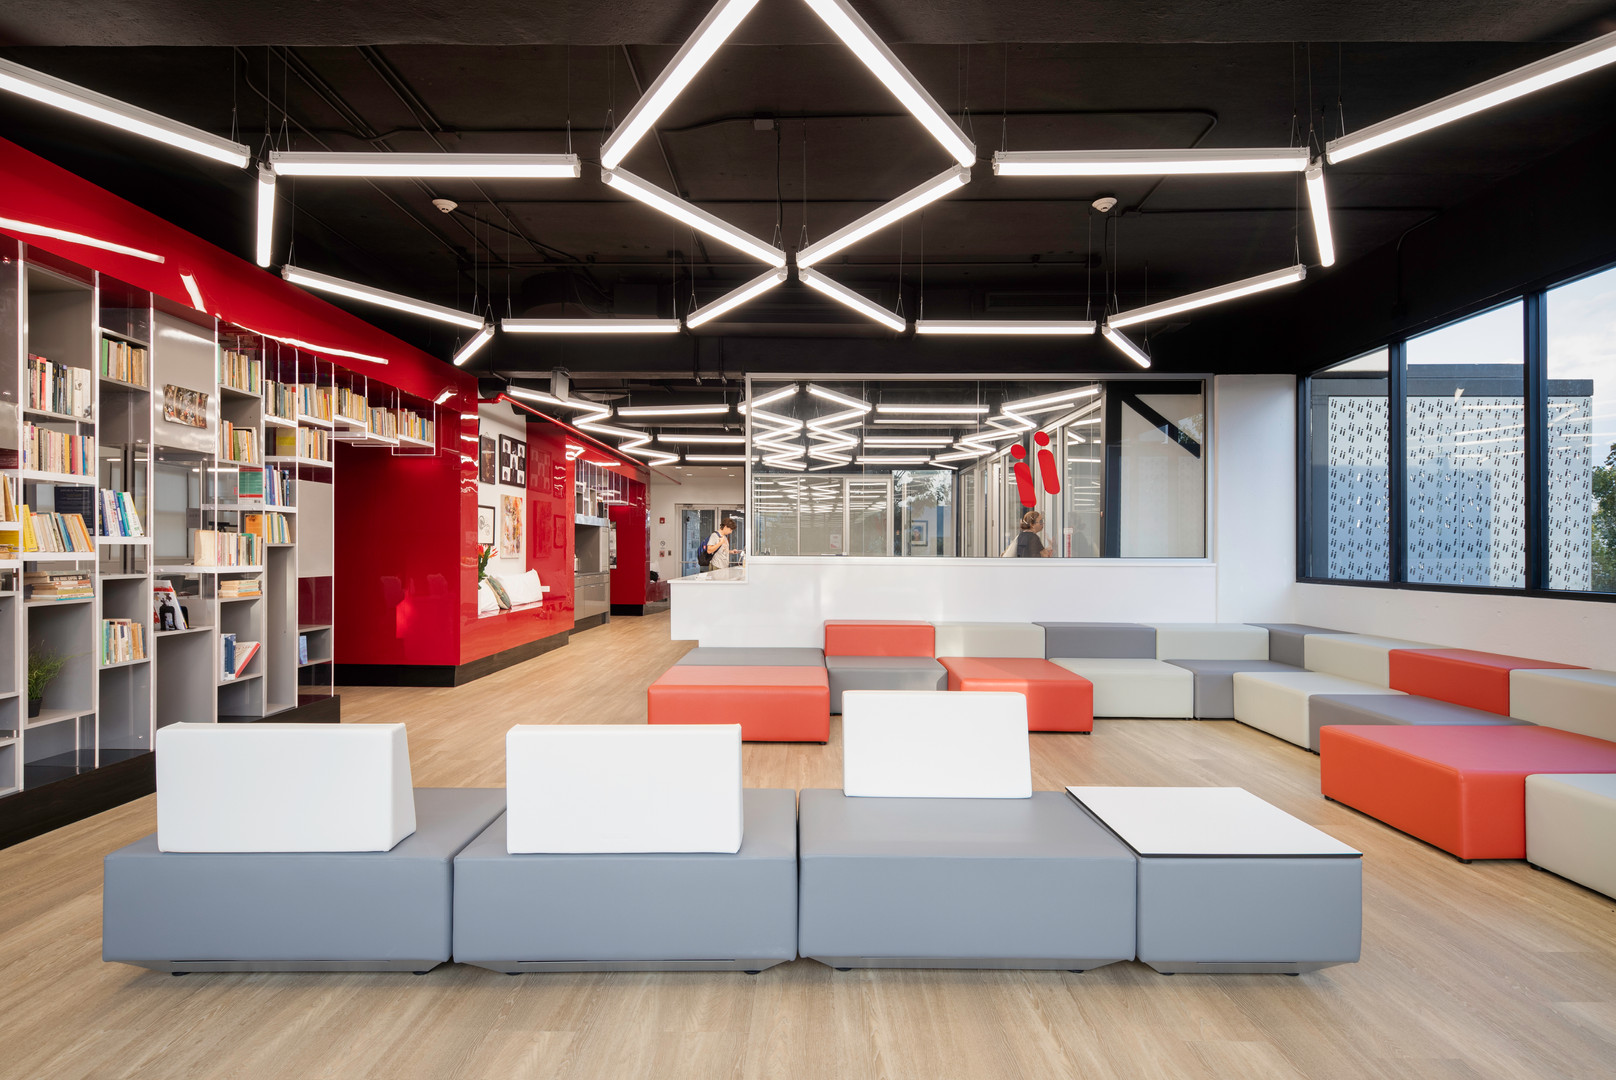 Conversation / Study Lounge and Multipurpose Space